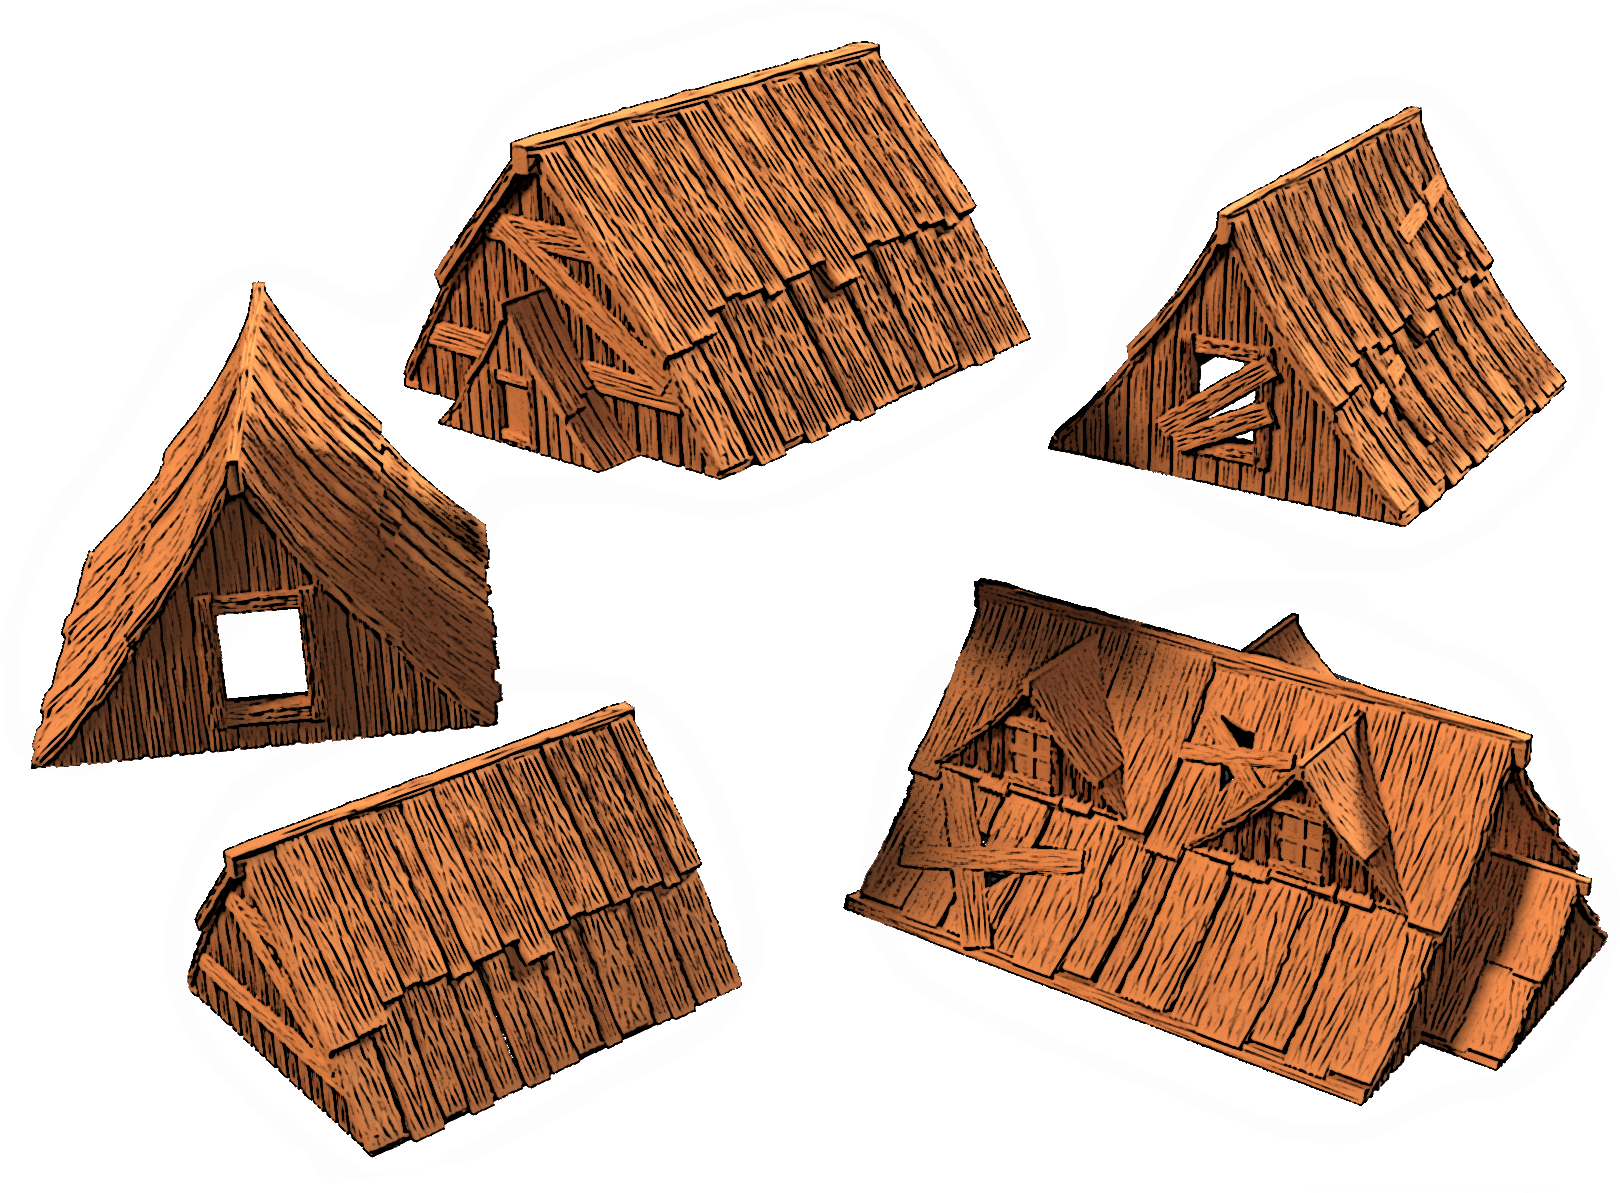 The Tormented Village Modular Terrain Set